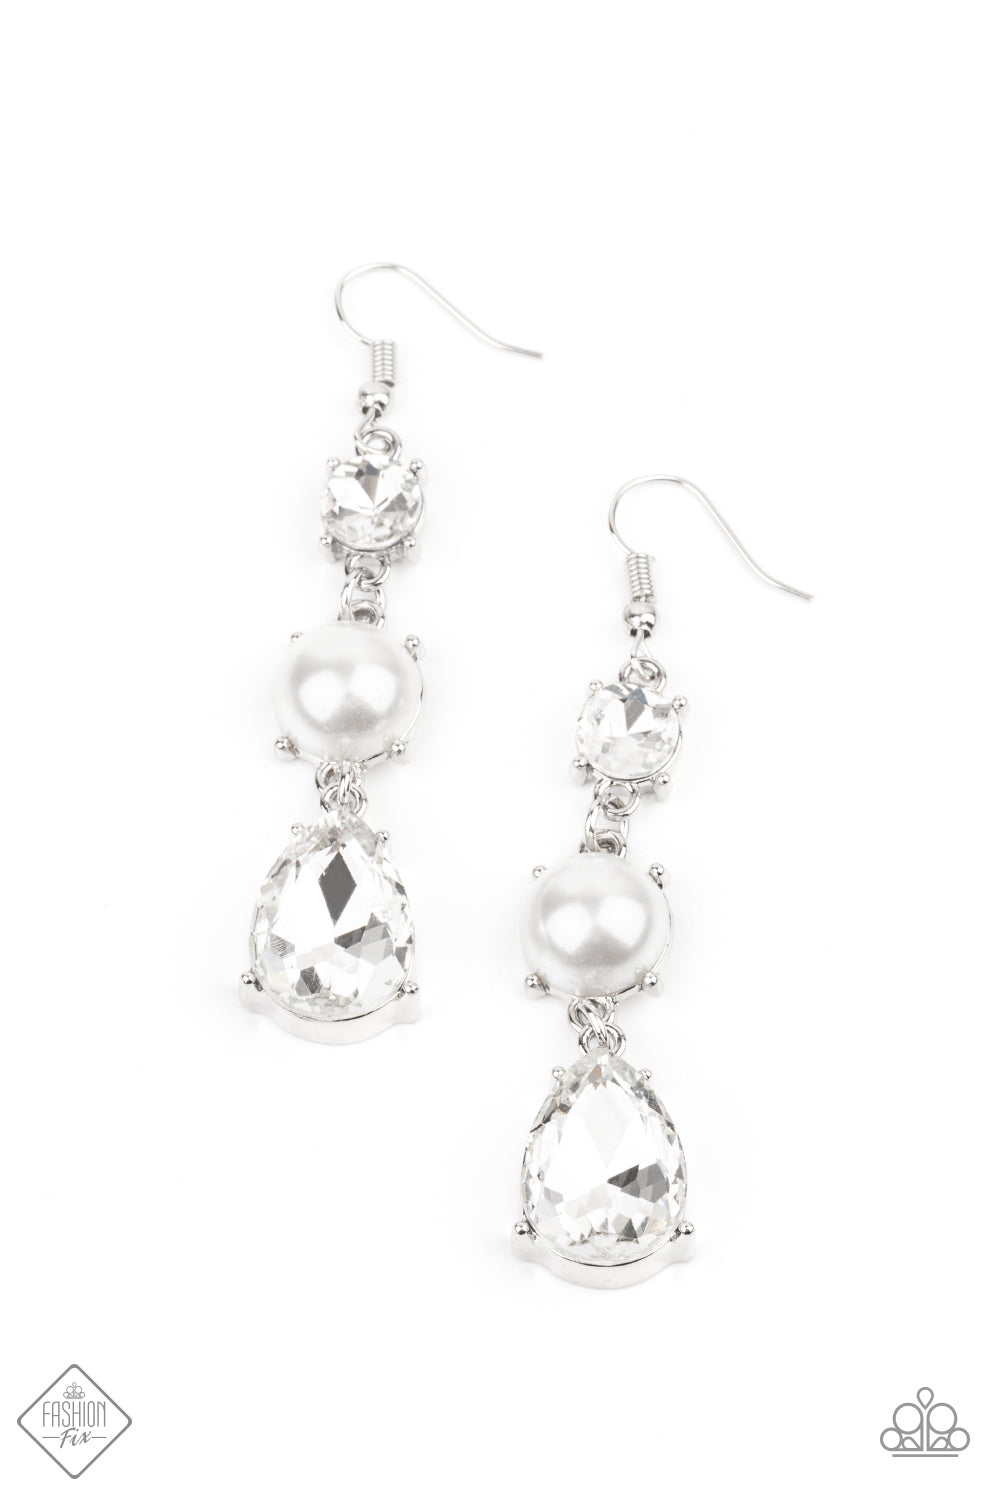 Paparazzi Earrings Fashion Fix Jan 2021 ~ Unpredictable Shimmer - White